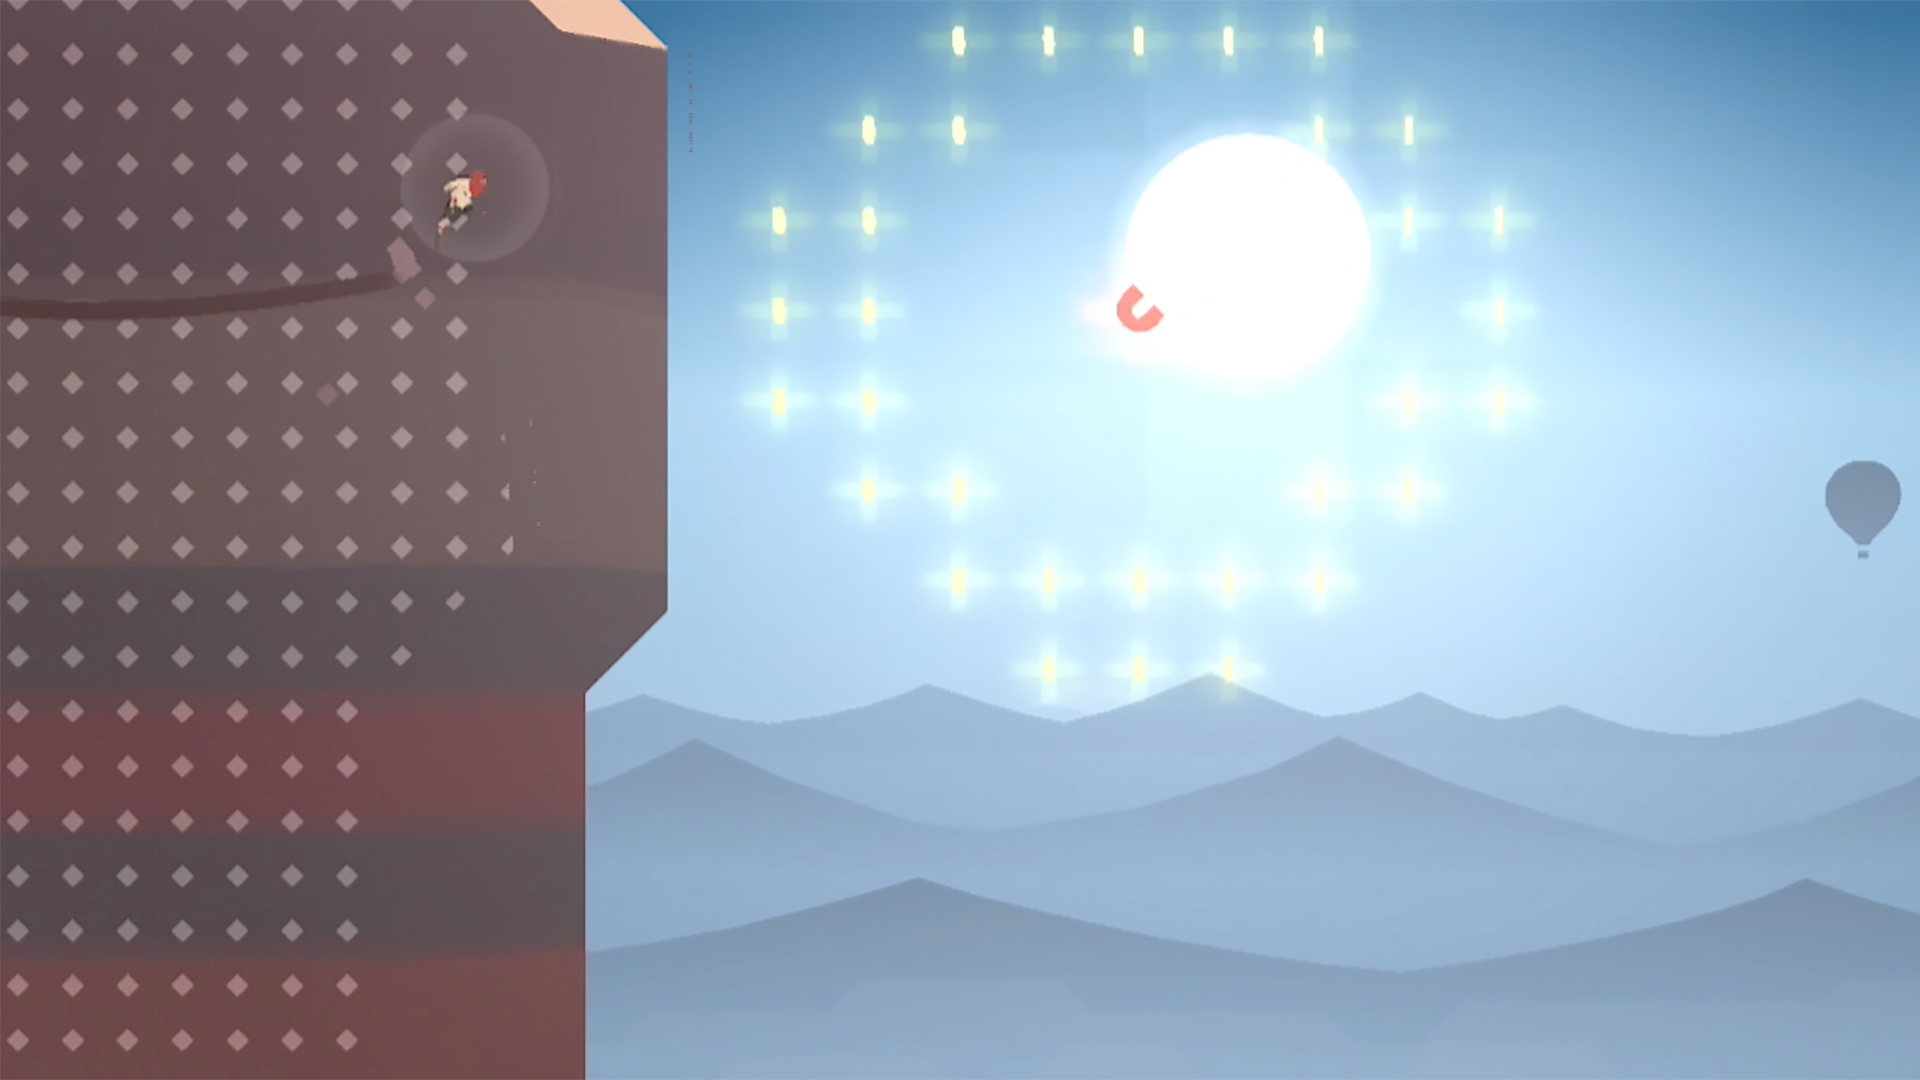 Canadian-made Alto's Odyssey aims to add variety to the ...